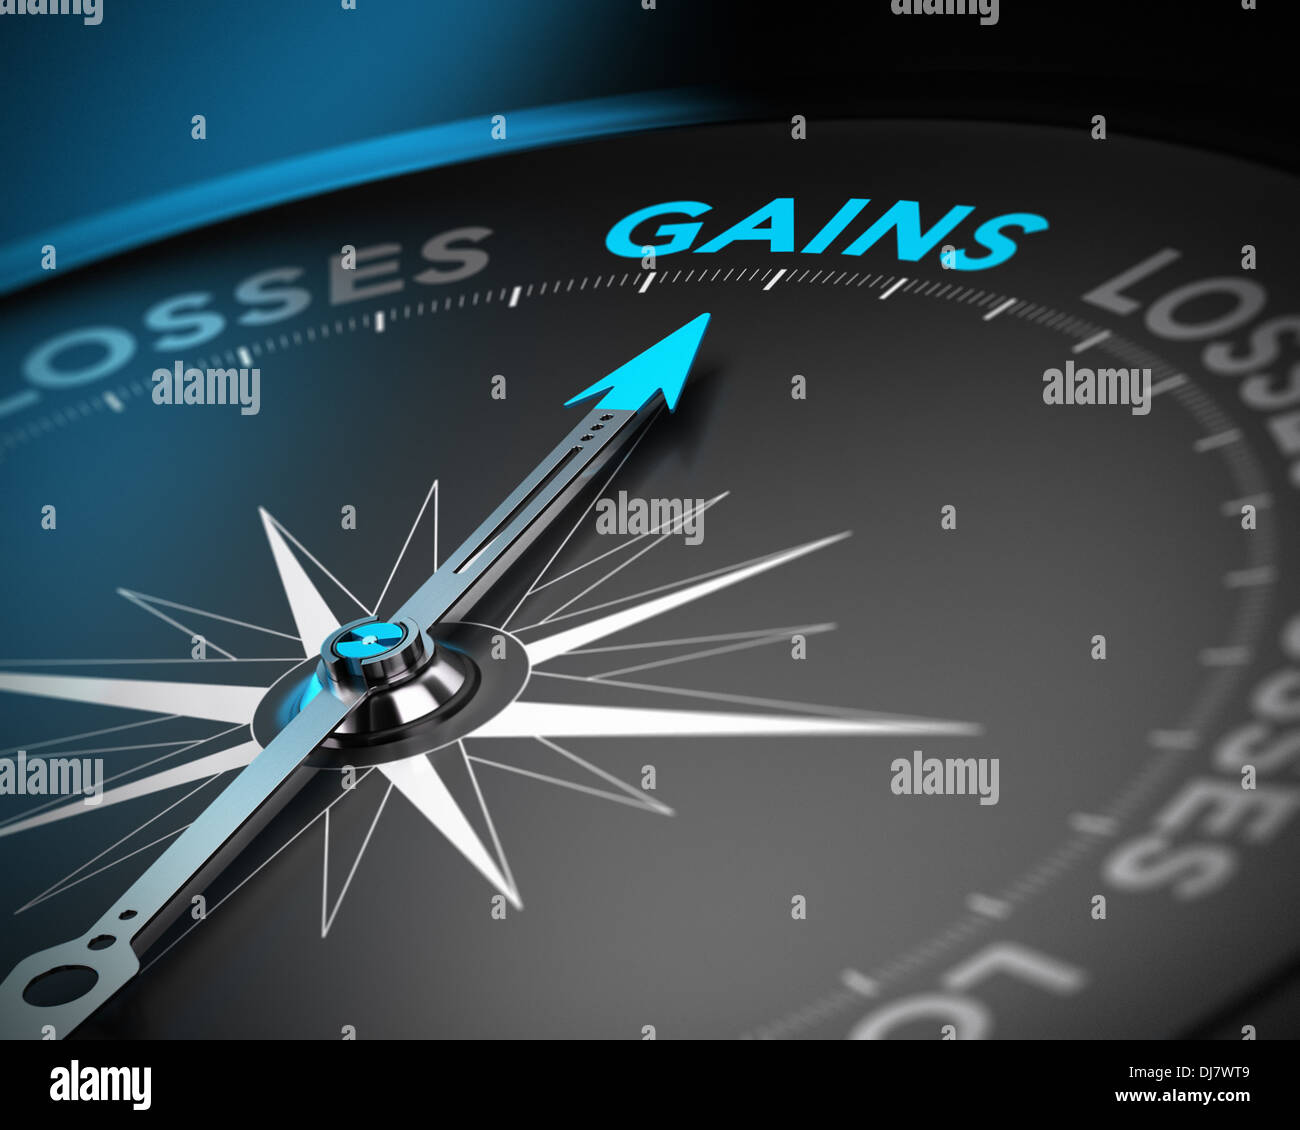 Financial consulting concept. Compass needle pointing the word gains over black background with blur effect - Stock Image